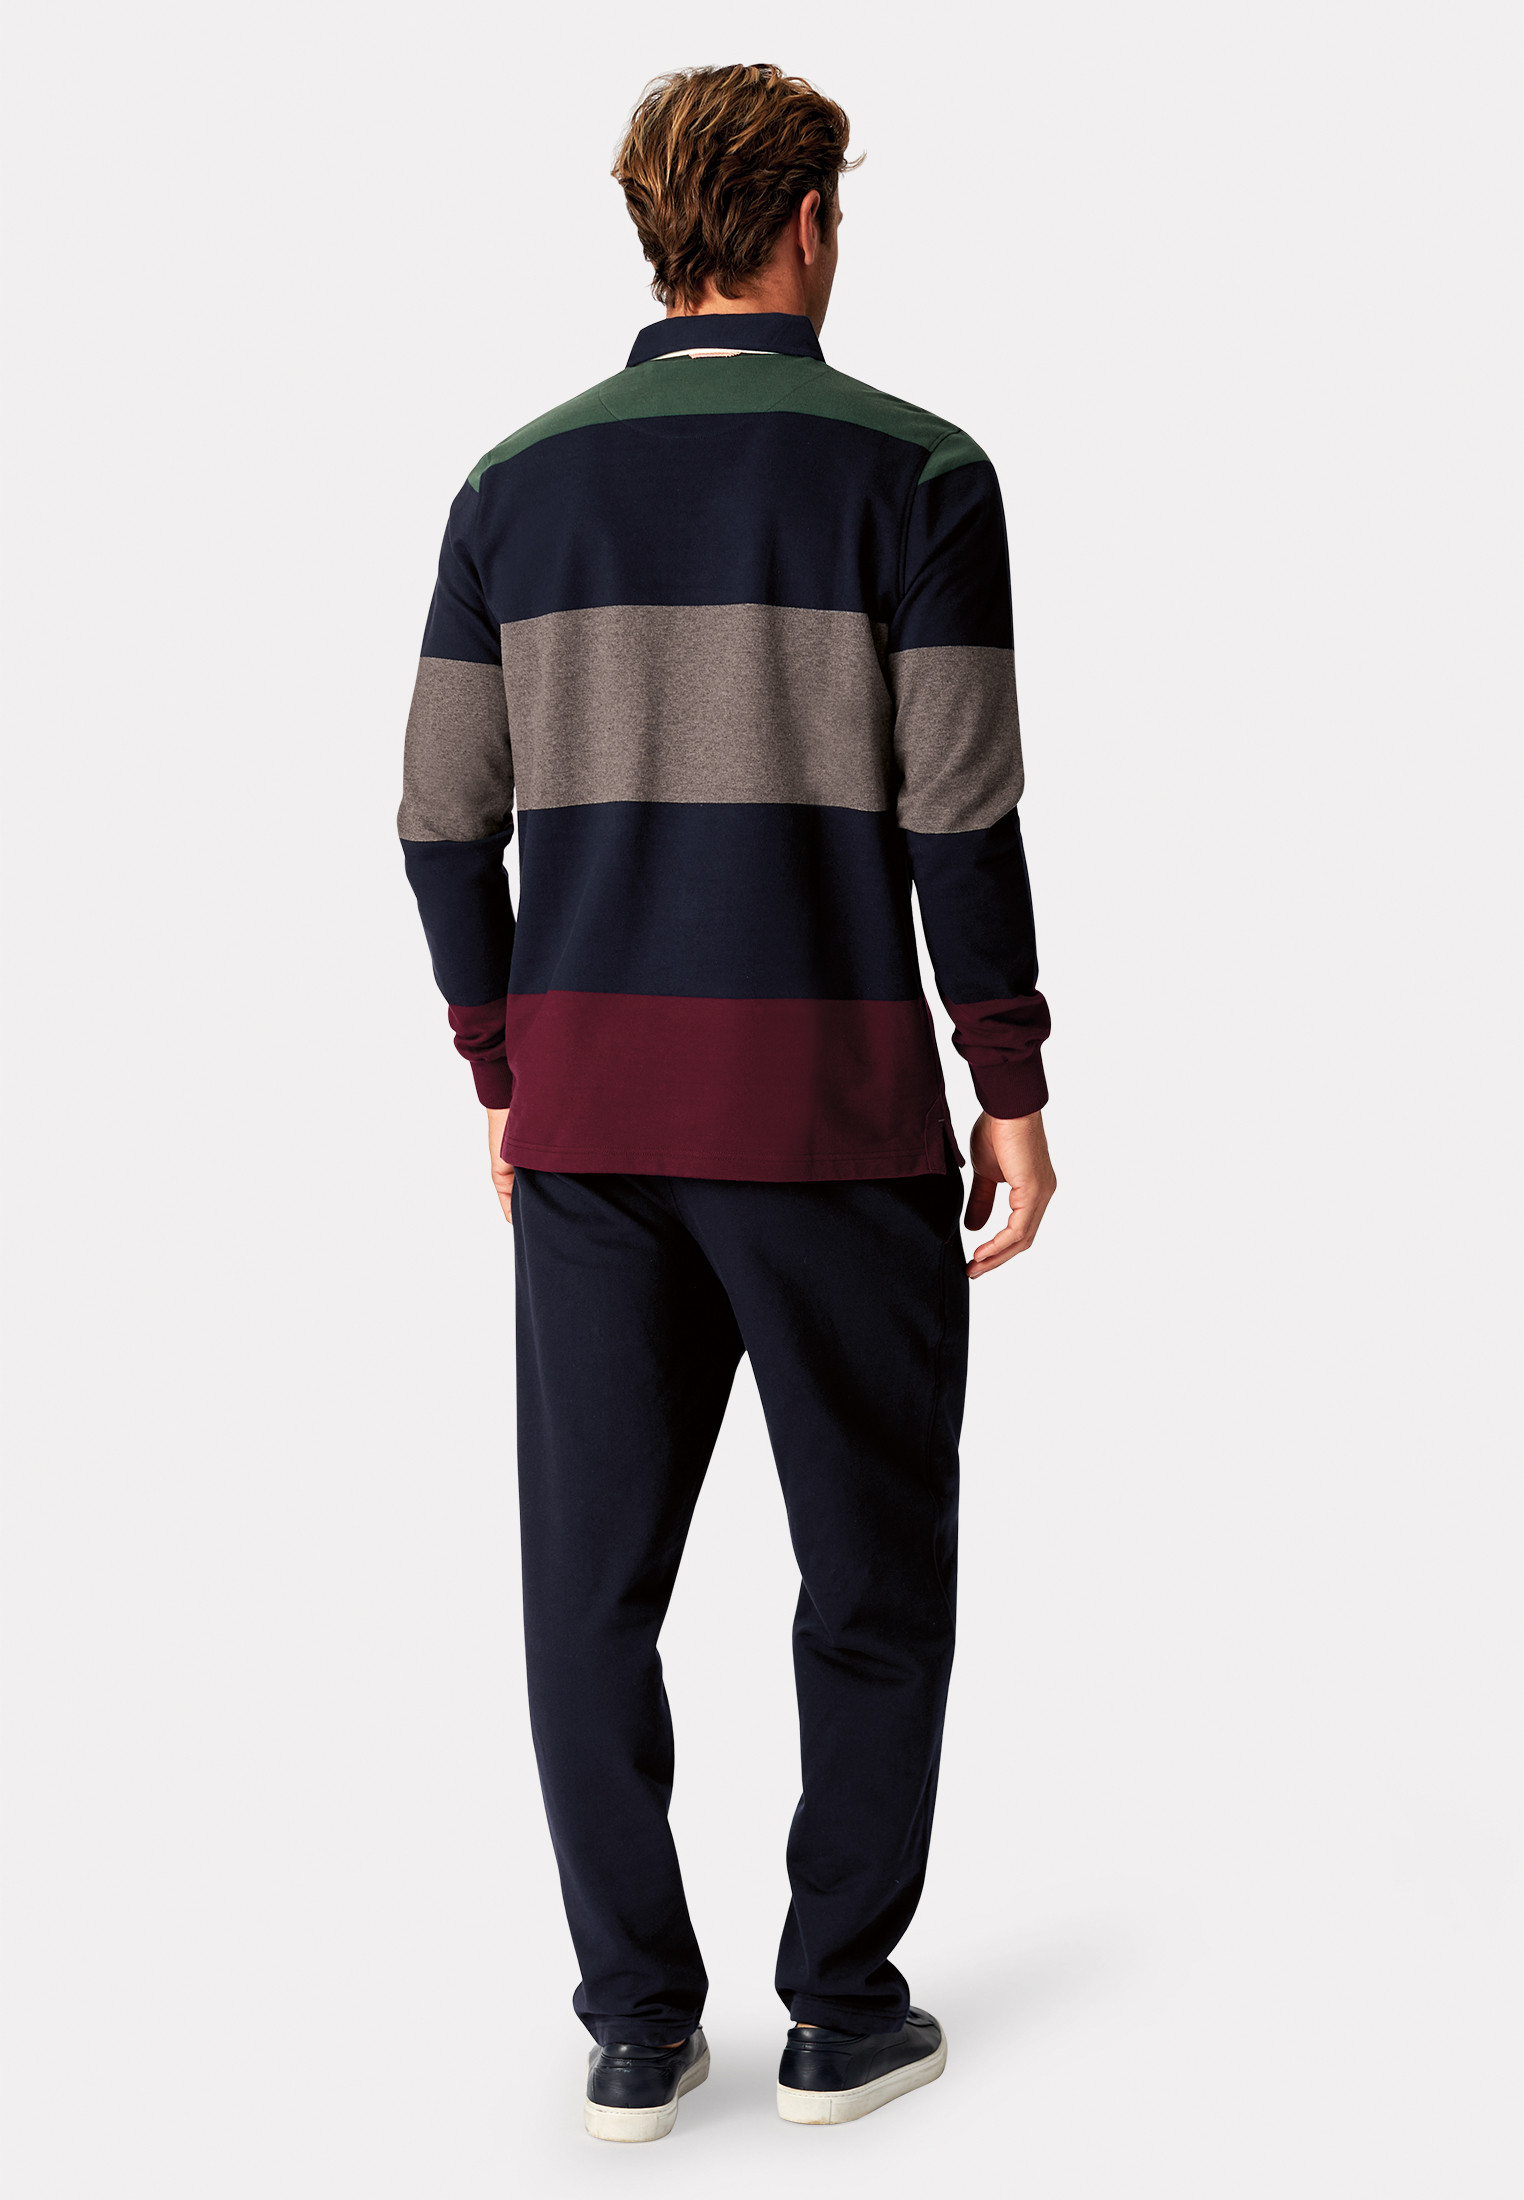 Richmond Wine Navy Charcoal and Green Hoop Rugby Shirt